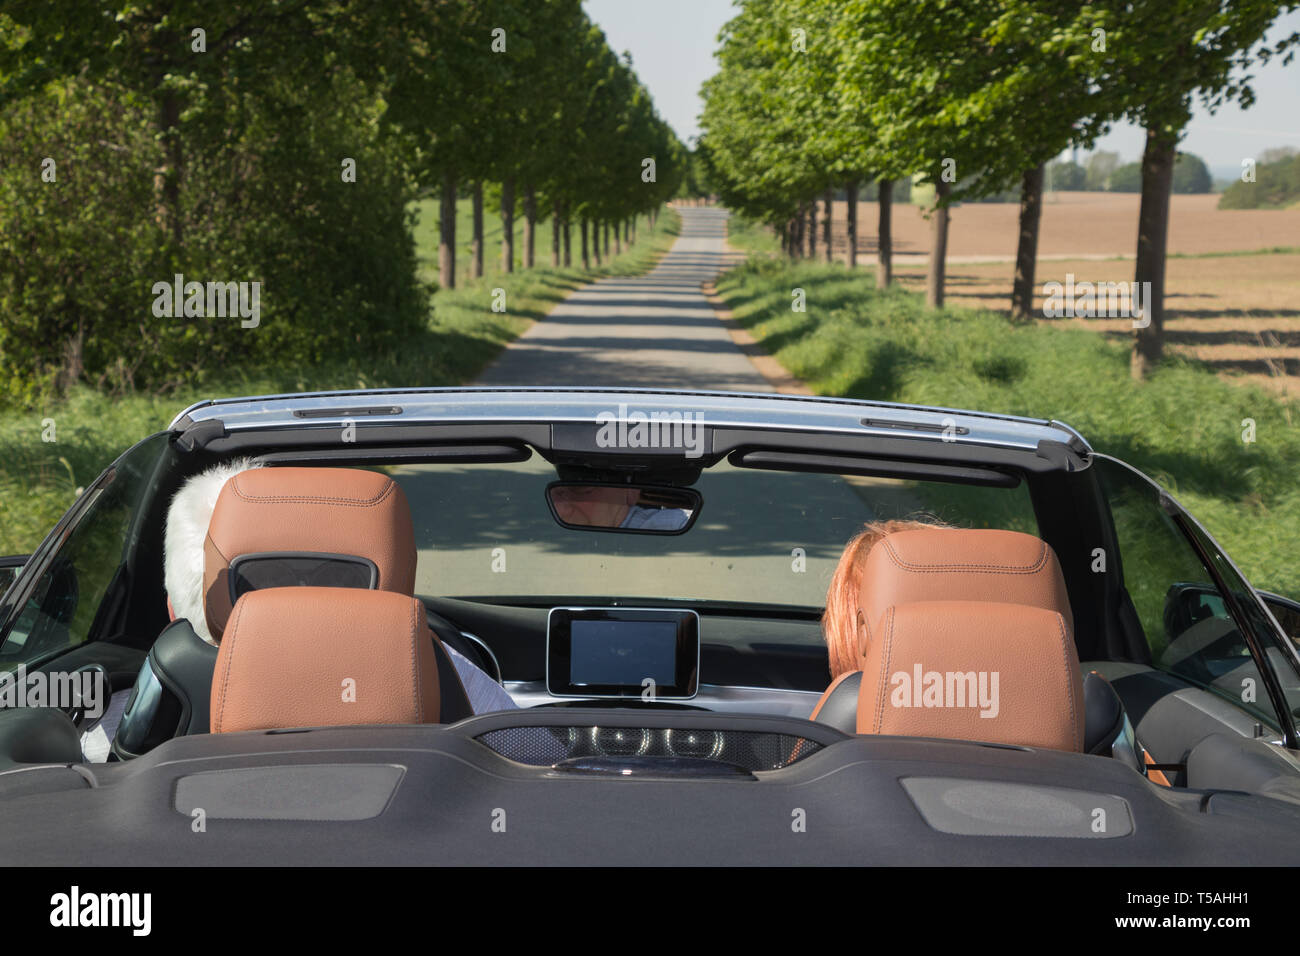 Two elderly people with a luxury convertible car - Stock Image